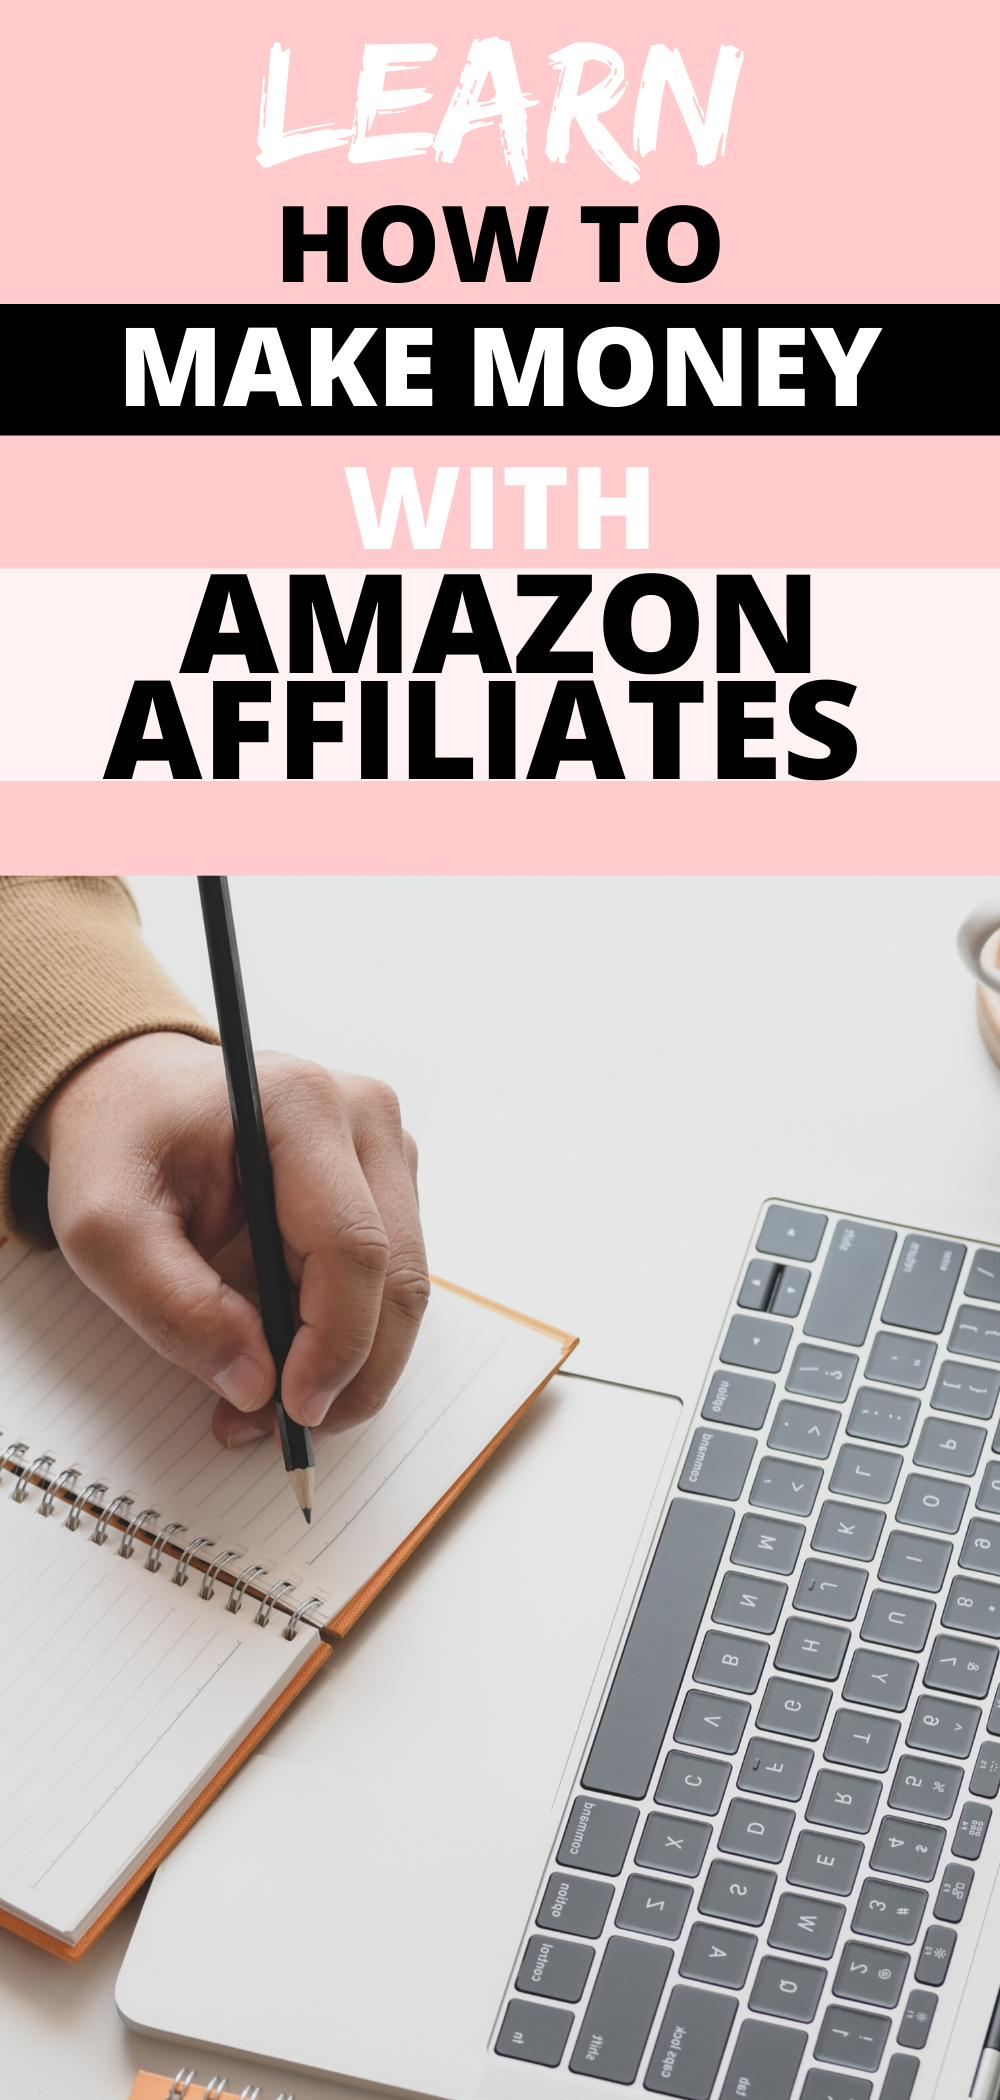 Did you know that you can earn money through the Amazon affiliate programme by recommending products to other people? Here is a complete course that will teach you everything about making money through this affiliate programme so you can make lots of money in no time. #Udemy #Affiliatelink